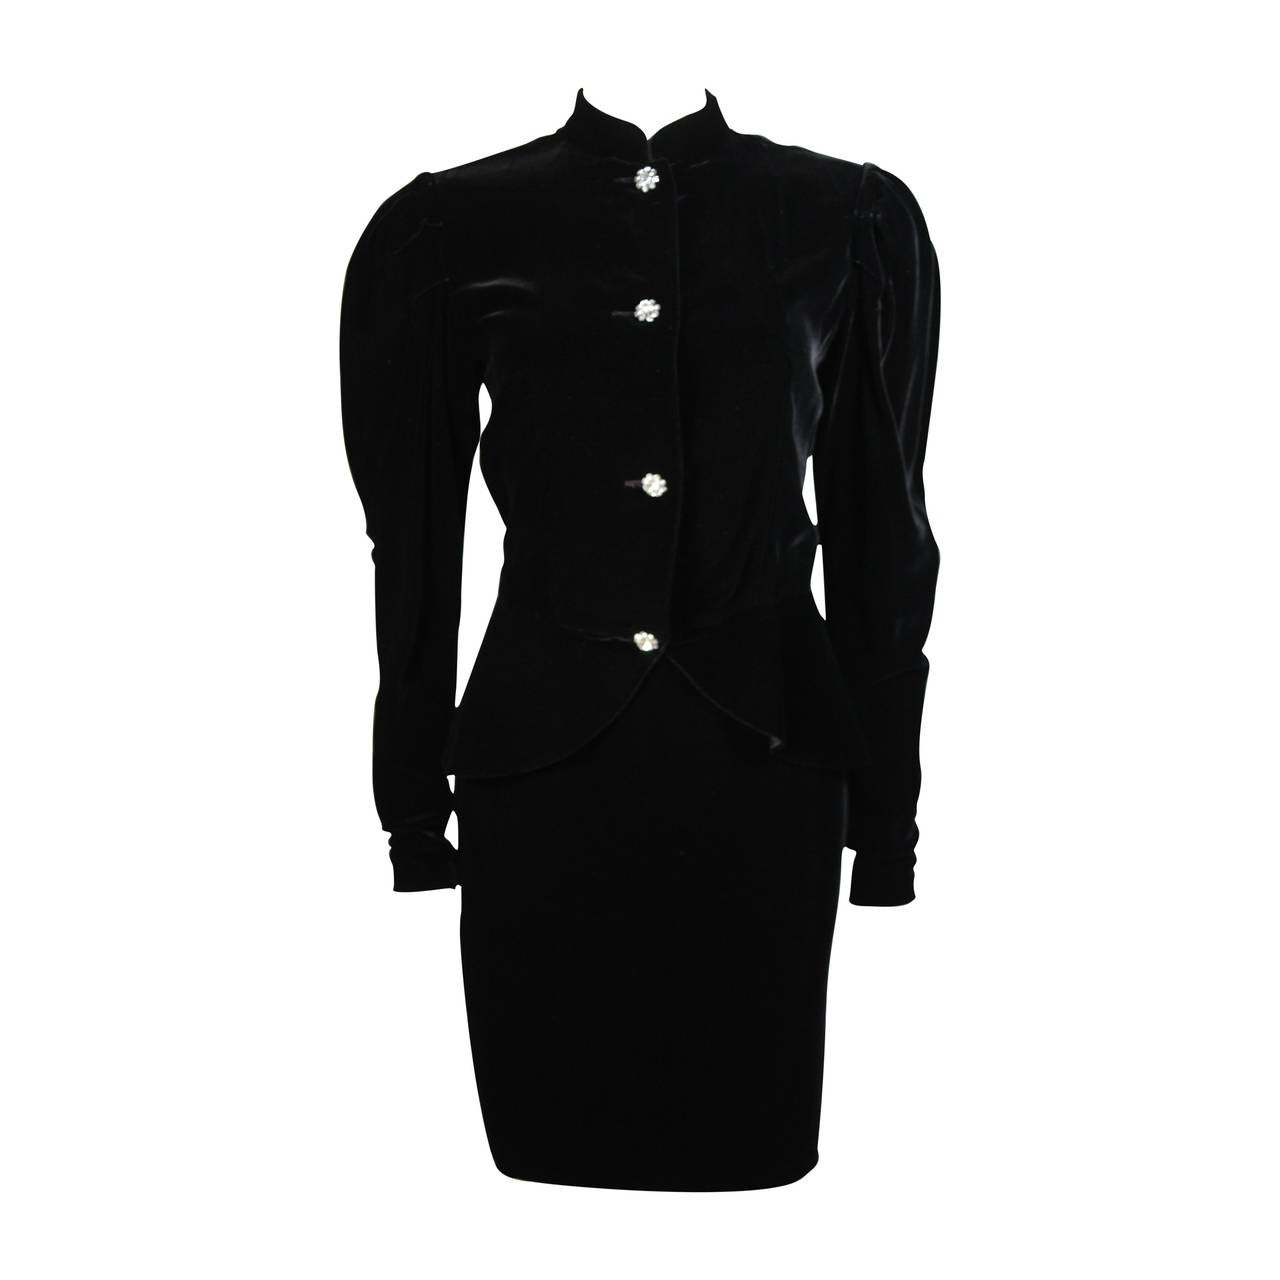 Vicky Tiel Black Velvet Skirt Suit with Rhinestone Buttons Size Small For Sale